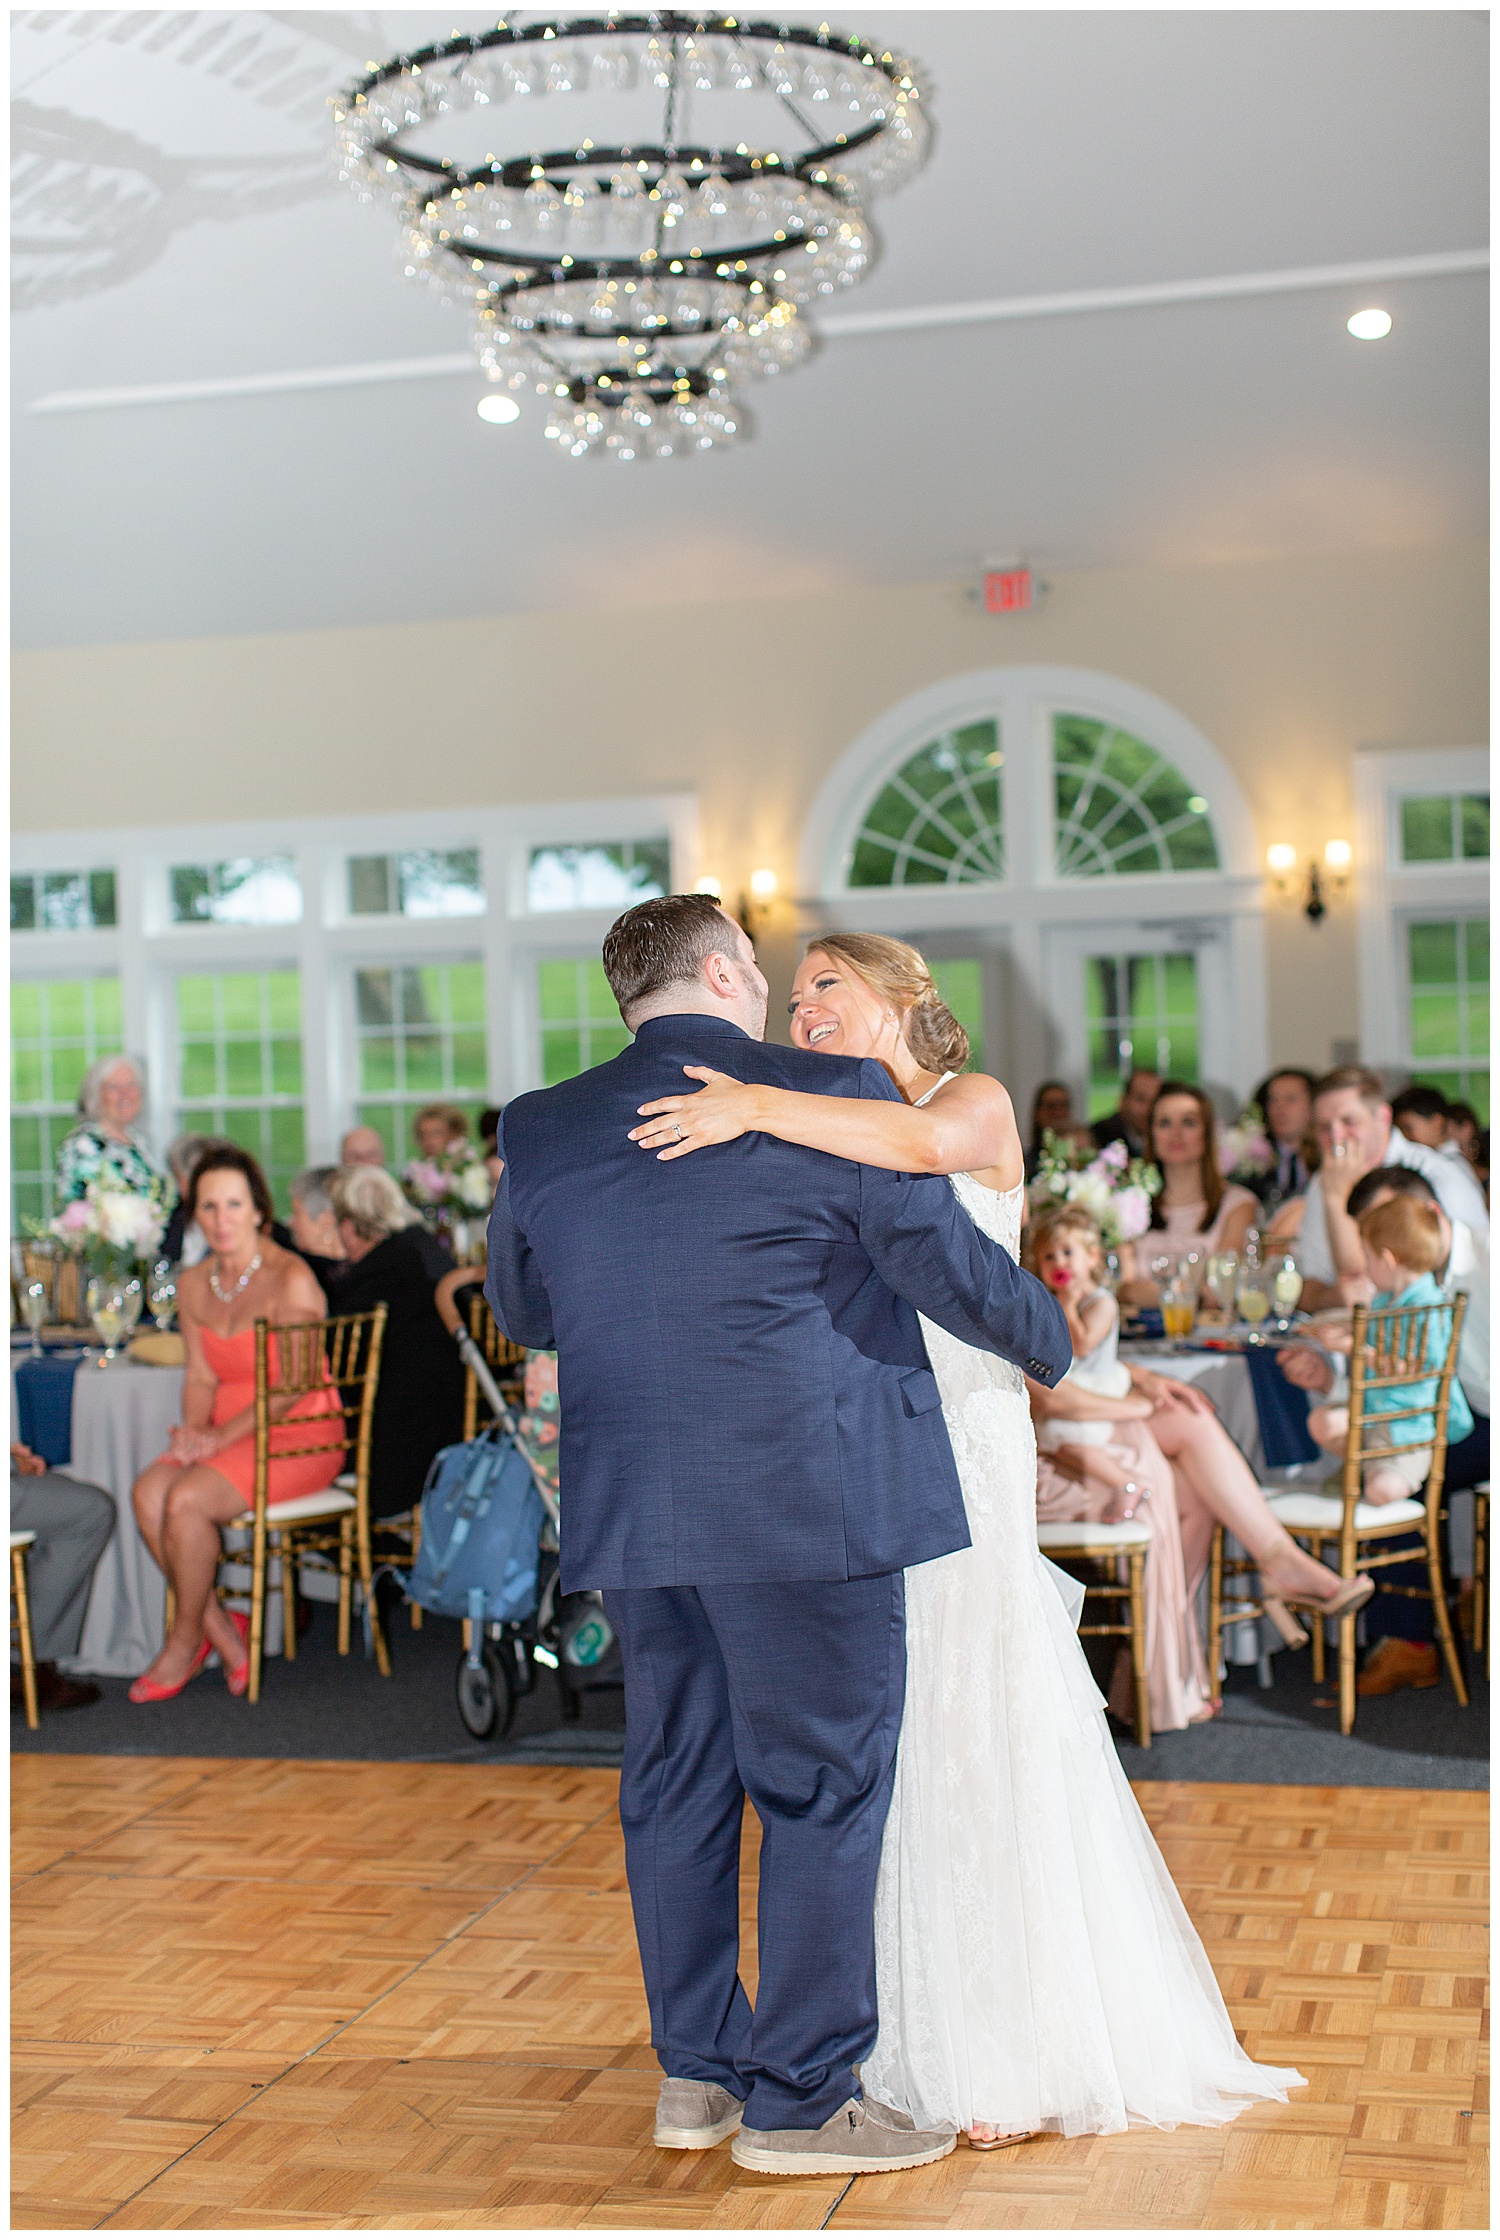 stone-manor-country-club-wedding-emily-belson-photography-90.jpg